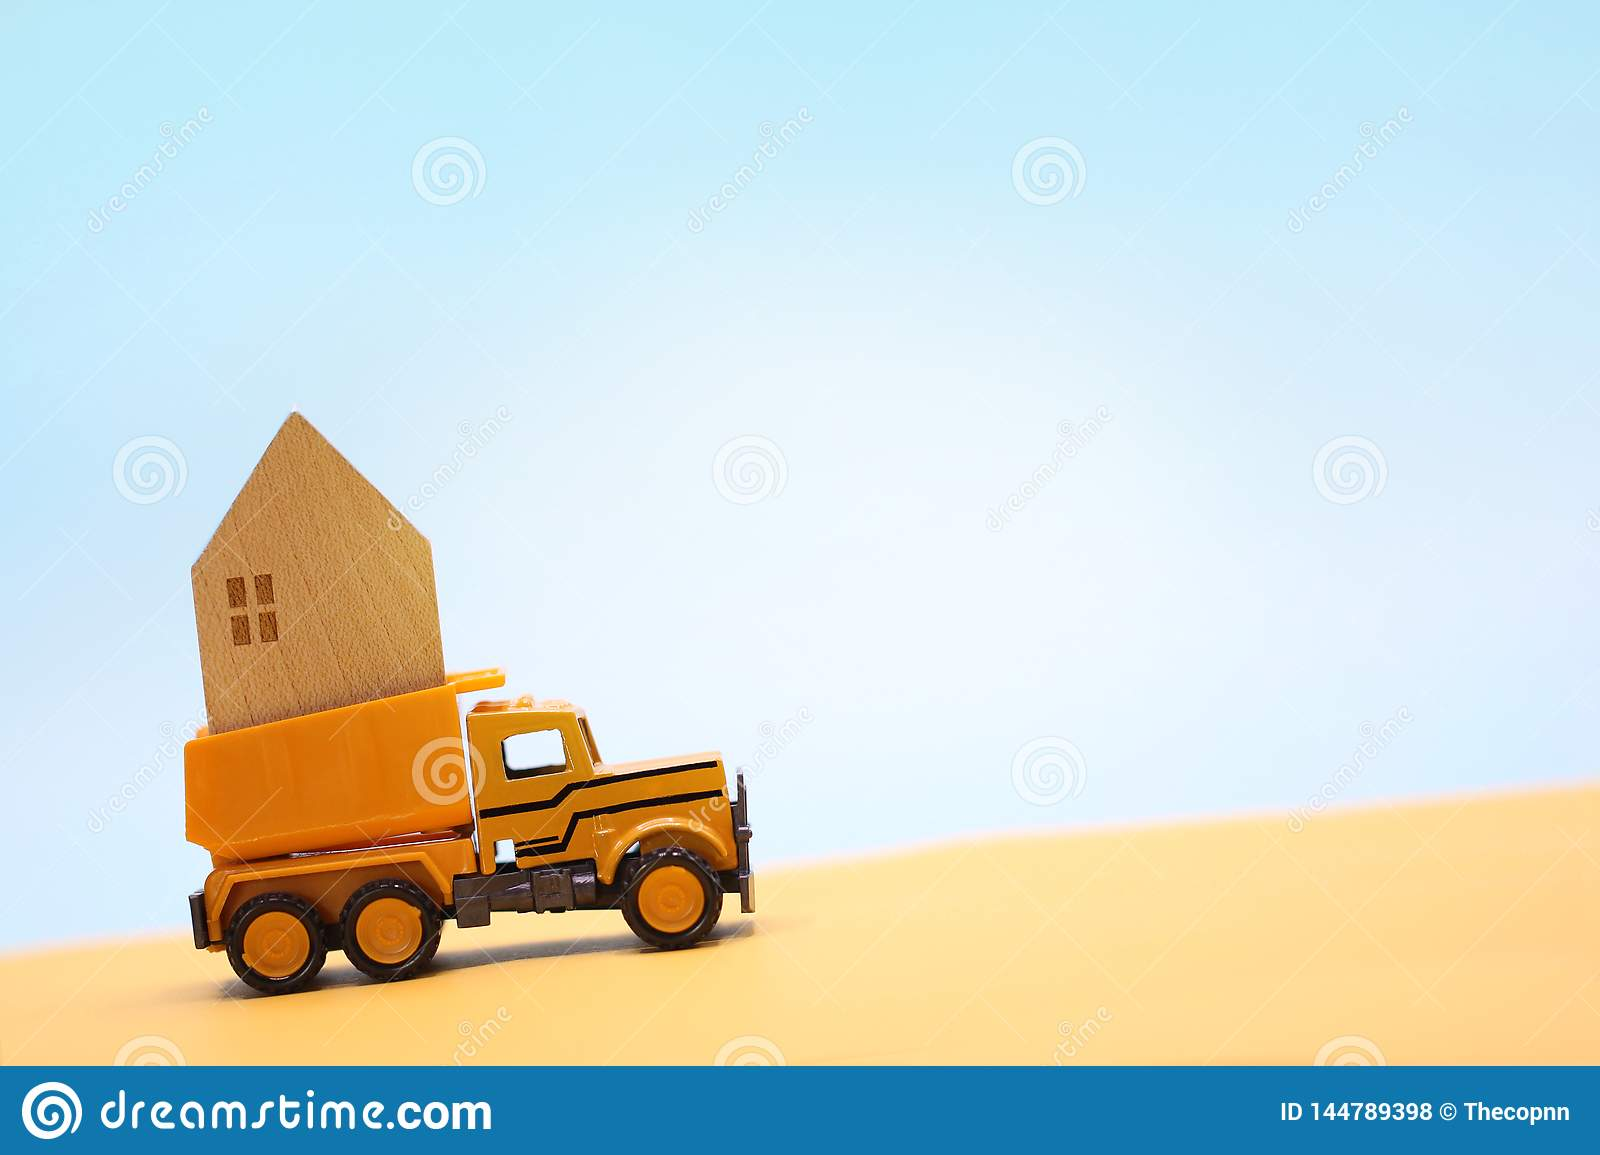 Wooden house carry on yellow toy truck in desert under blue sky